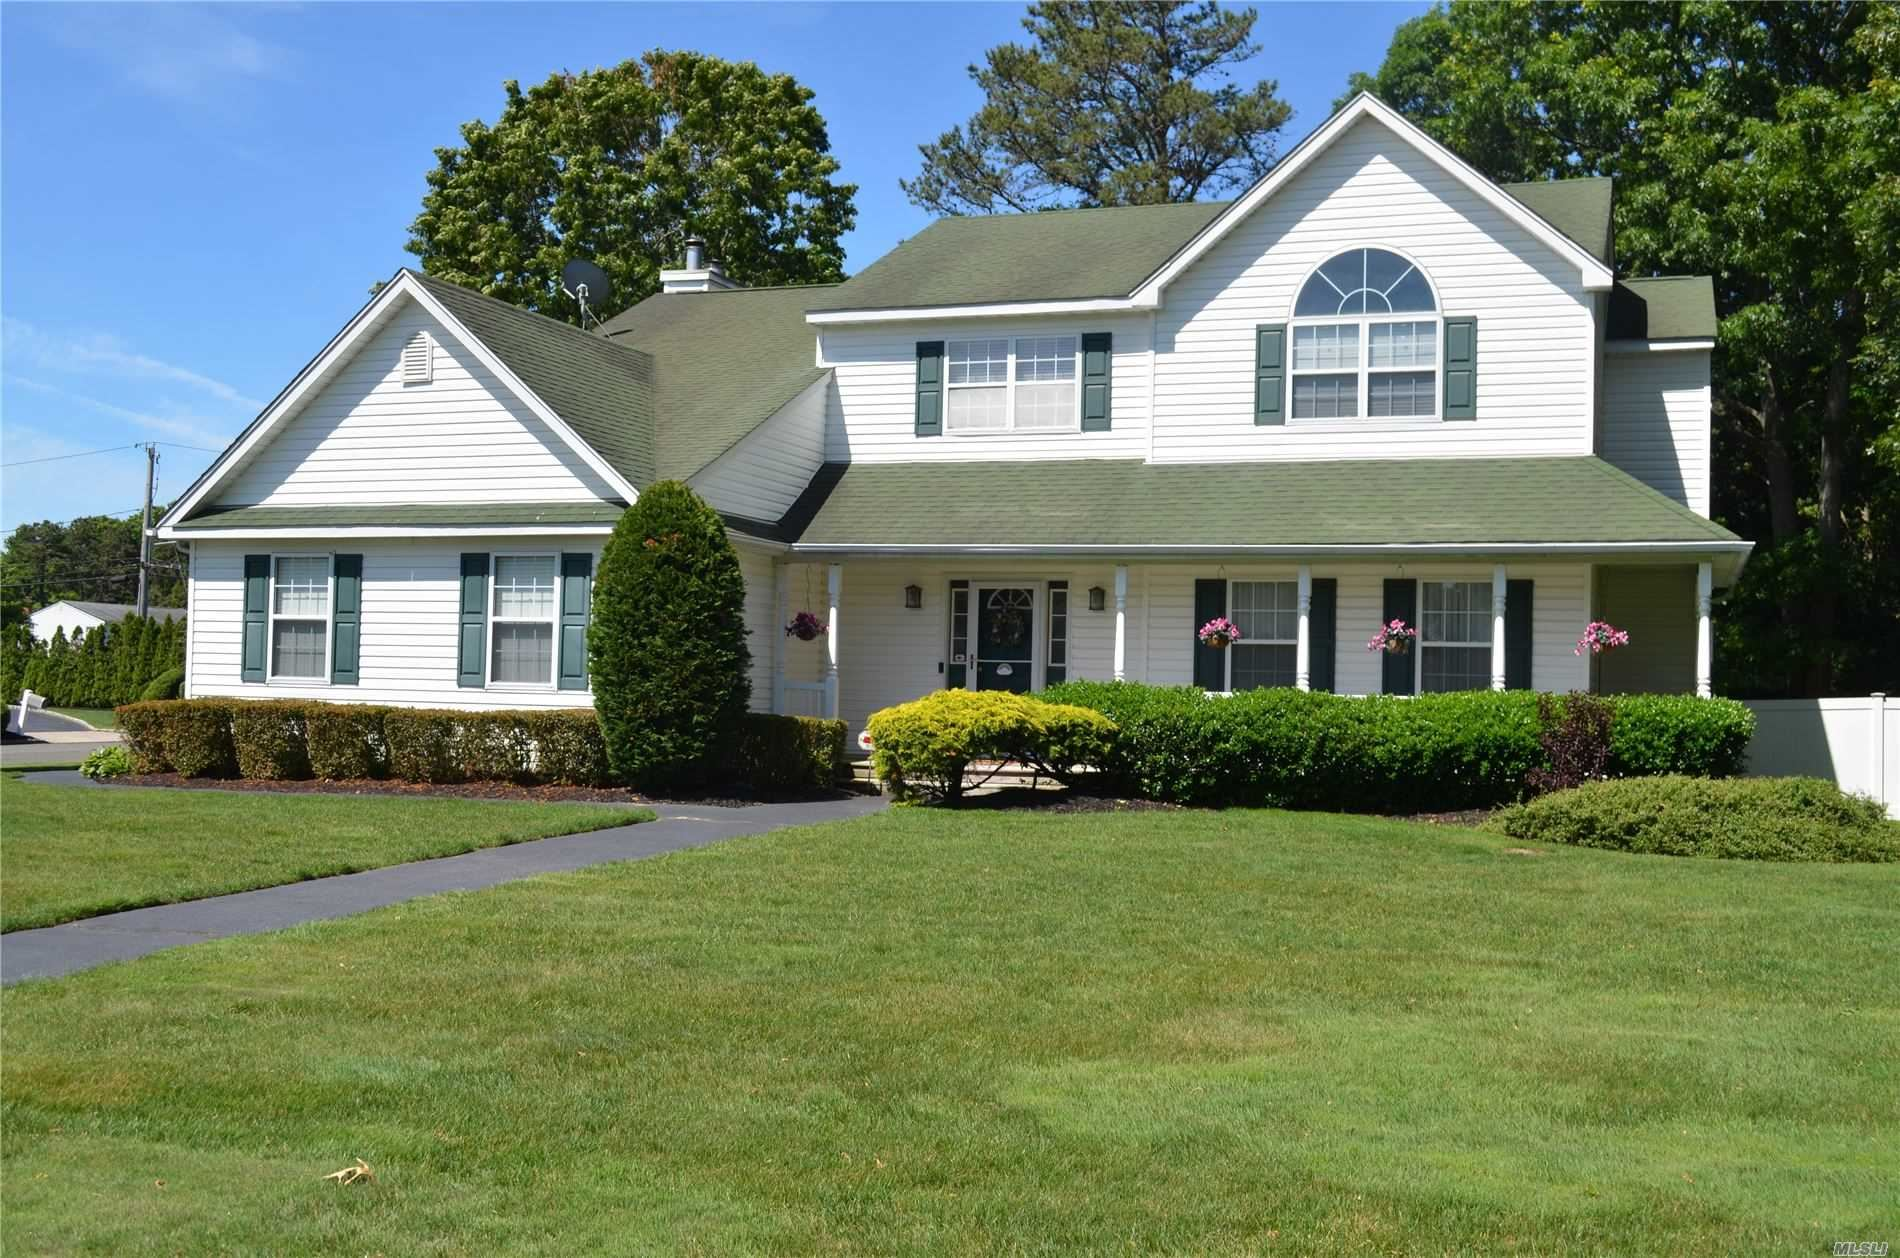 1 Embassy Road, Selden, NY 11784 - MLS#: 3222520